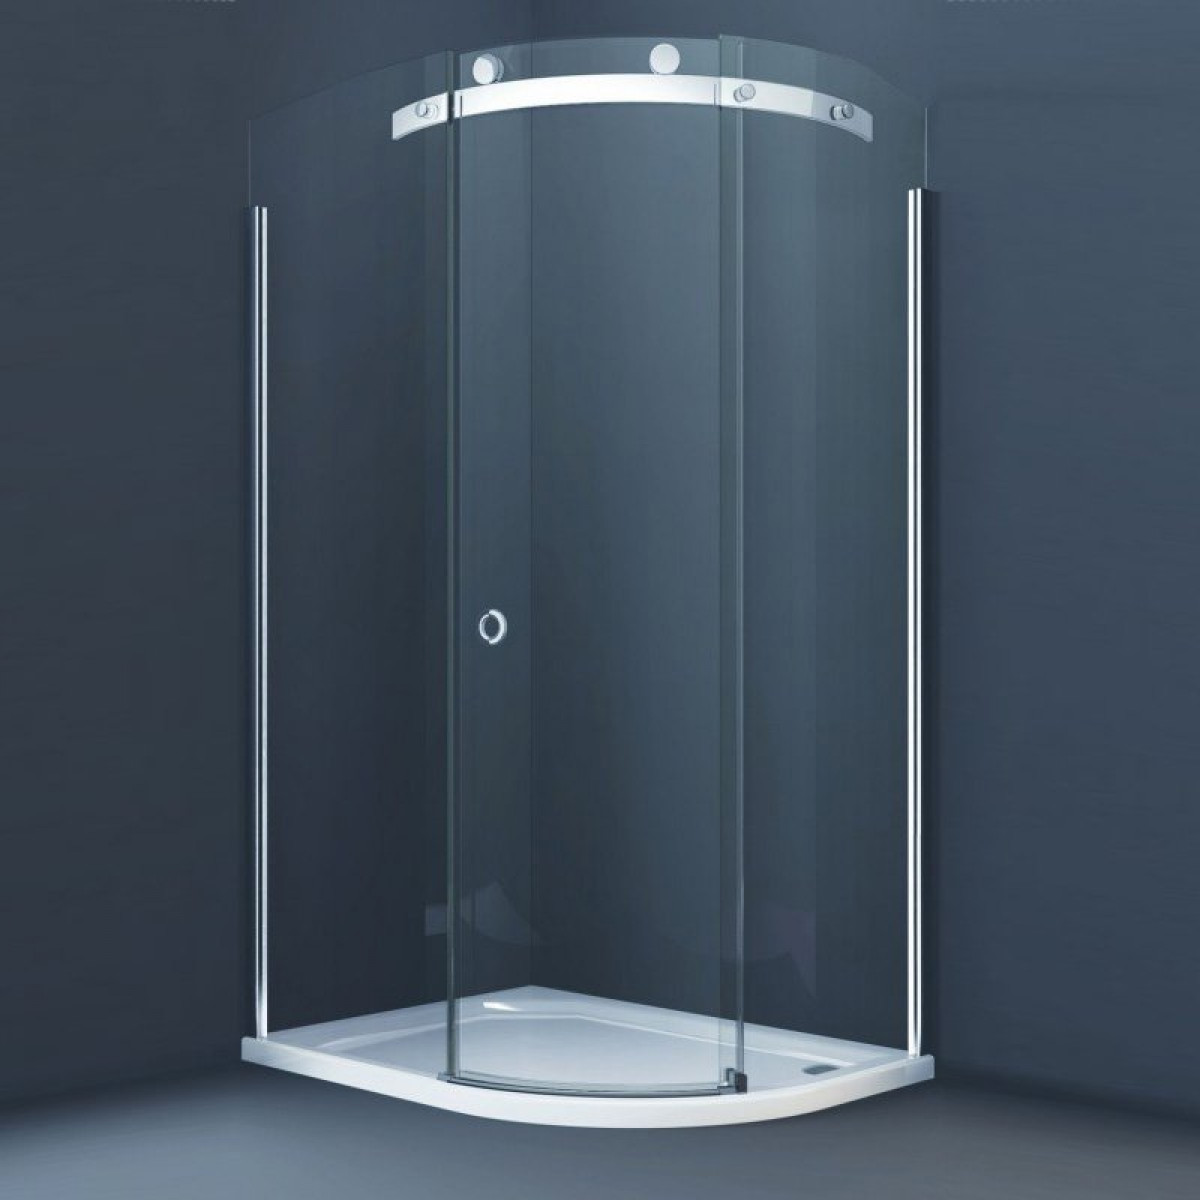 Merlyn 10 Series Offset Quadrant Shower Enclosure 1400 x 800mm